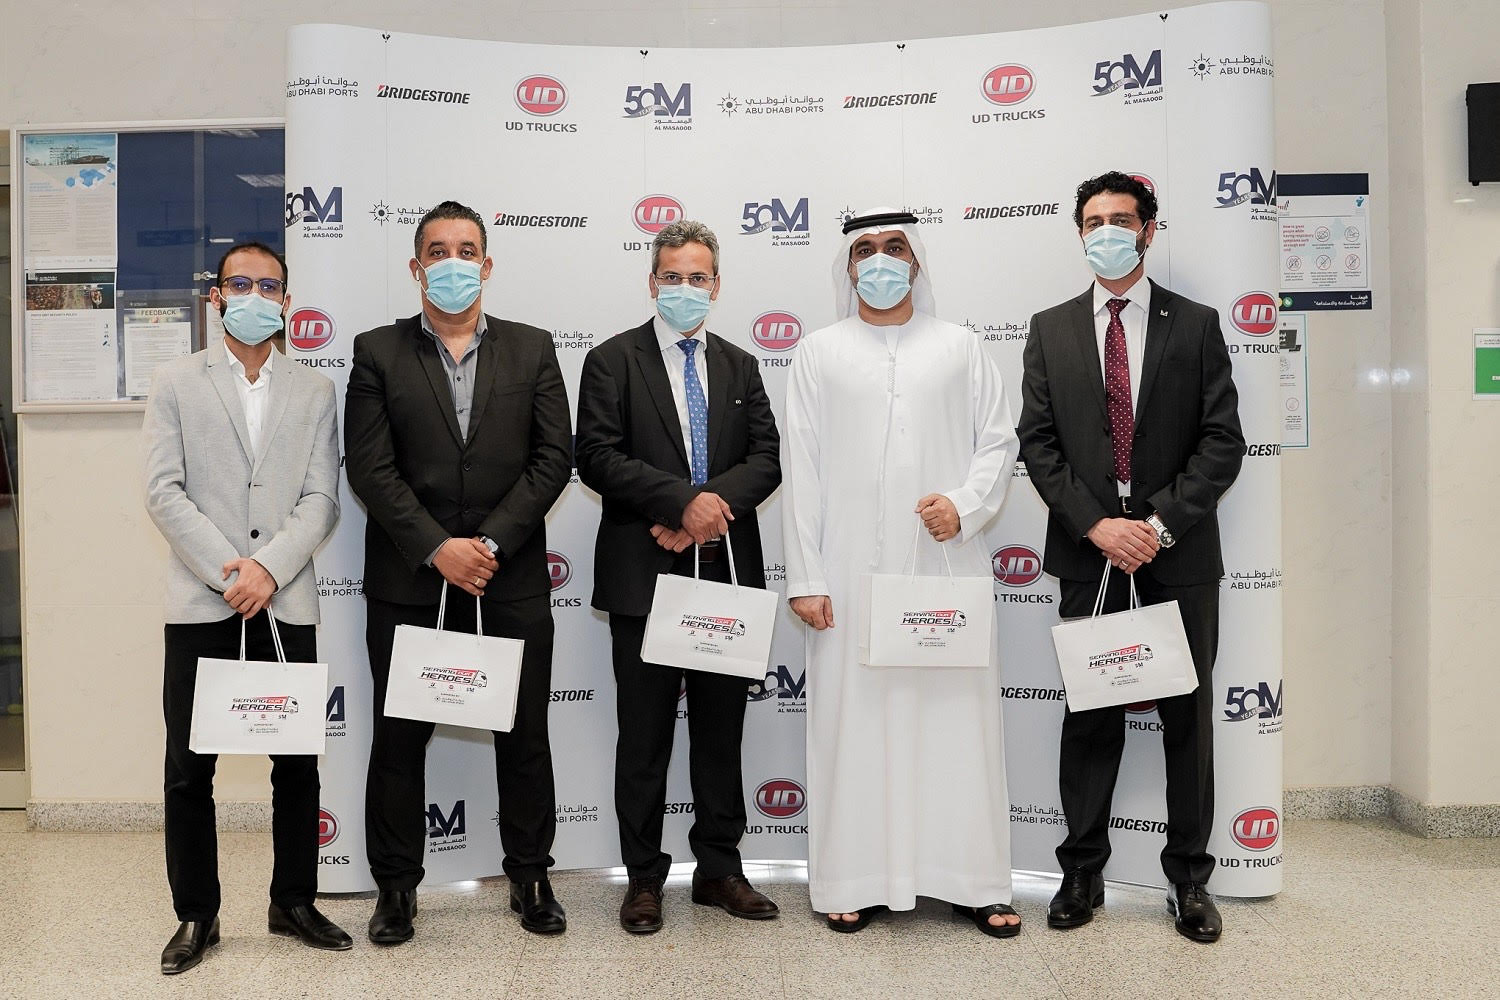 UD Trucks, Bridgestone, and Al Masaood join forces to help educate truck drivers about keeping safe against COVID-19